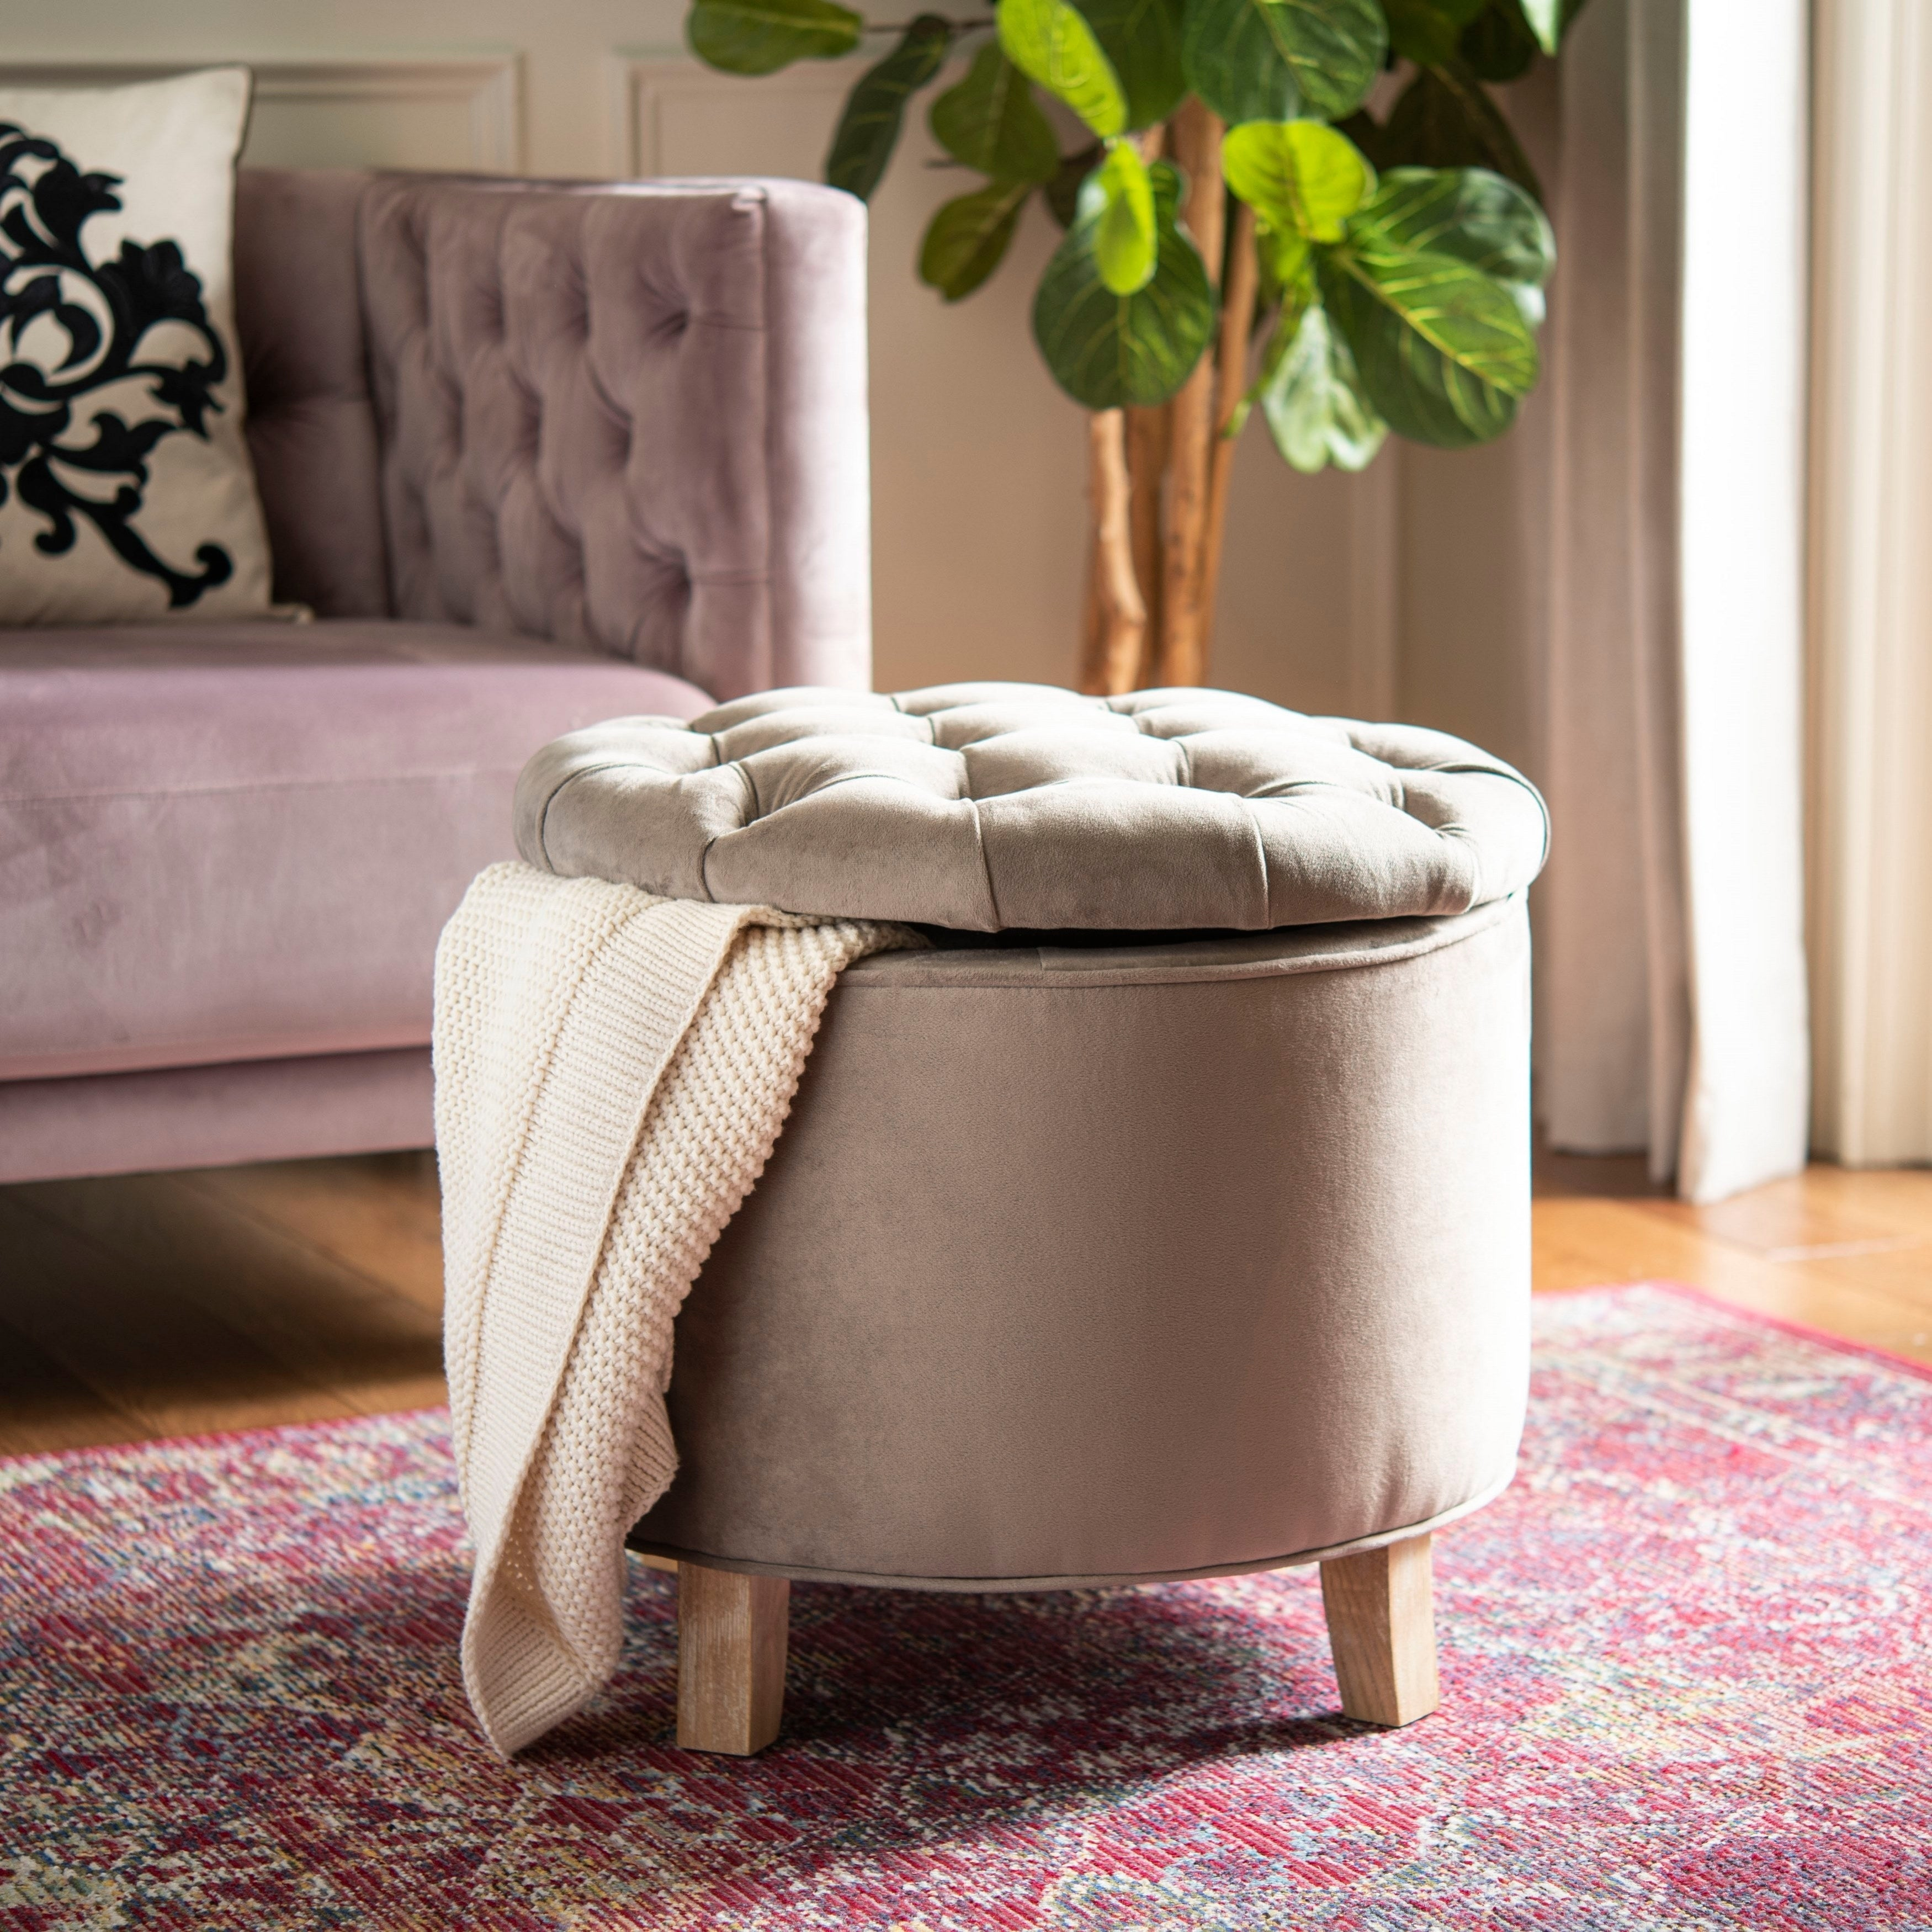 Amazing Safavieh Amelia Mushroom Taupe Cotton Tufted Storage Ottoman Gmtry Best Dining Table And Chair Ideas Images Gmtryco